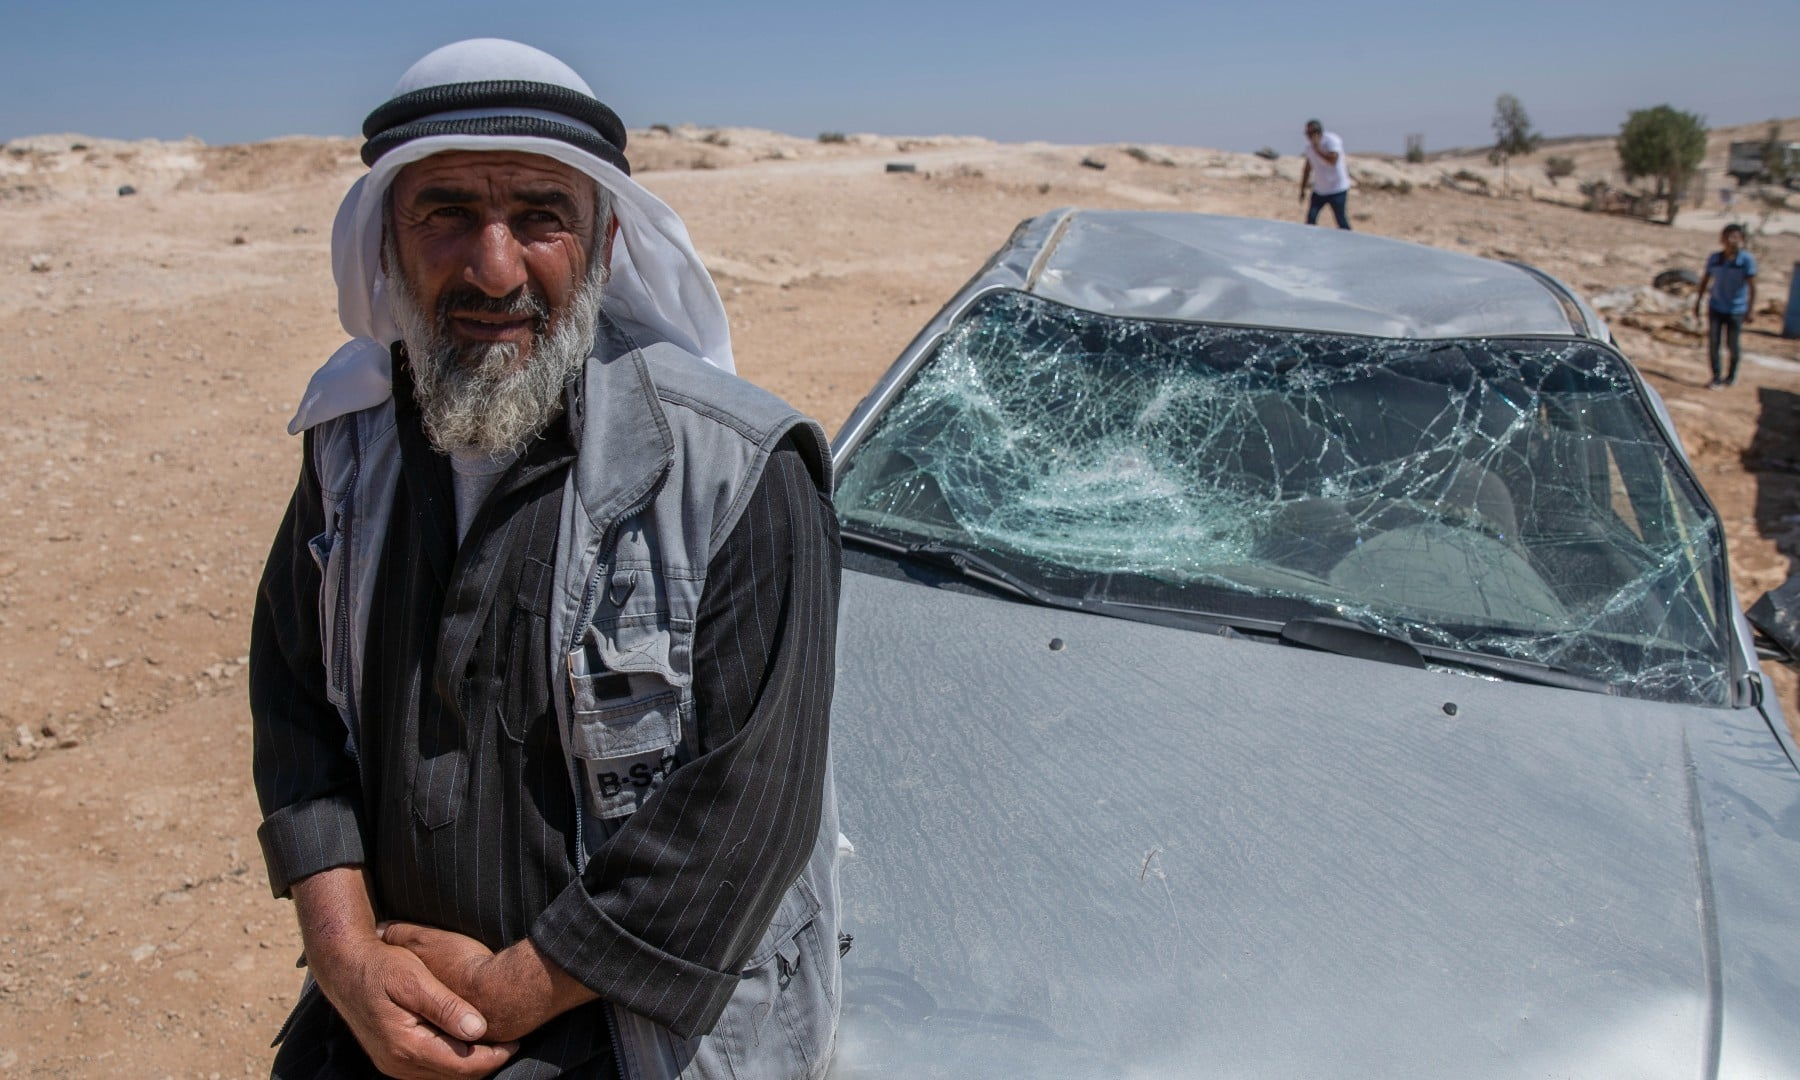 A Palestinian man leans on his smashed vehicle following a settlers attack from nearby settlement outposts on his Bedouin community, in the West Bank village of Al-Mufagara, on Sept 30. — AP